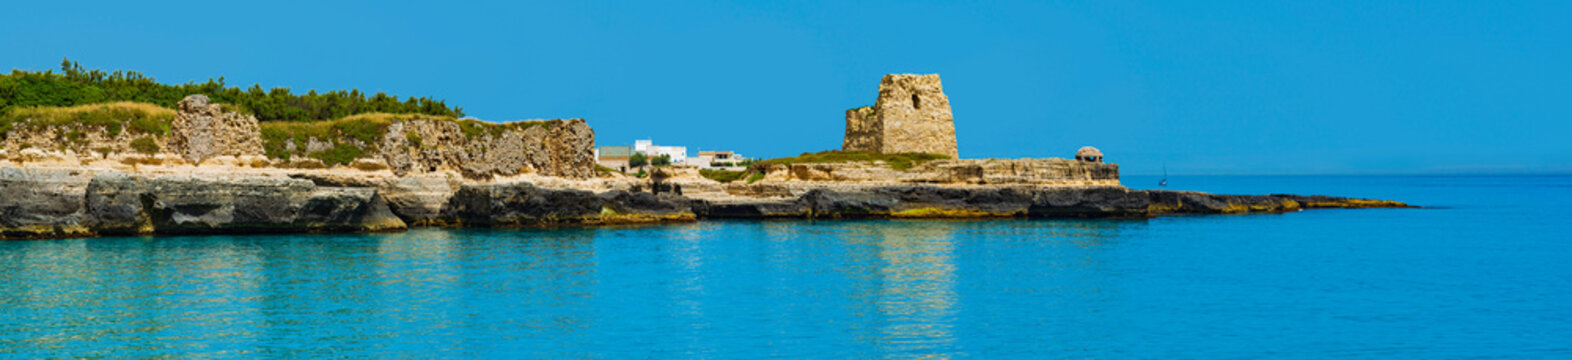 Holiday in Apulia. The important archaeological site and tourist resort of Roca Vecchia, in Puglia, Salento, Italy. In the background, an anti-aircraft casemate from World War II